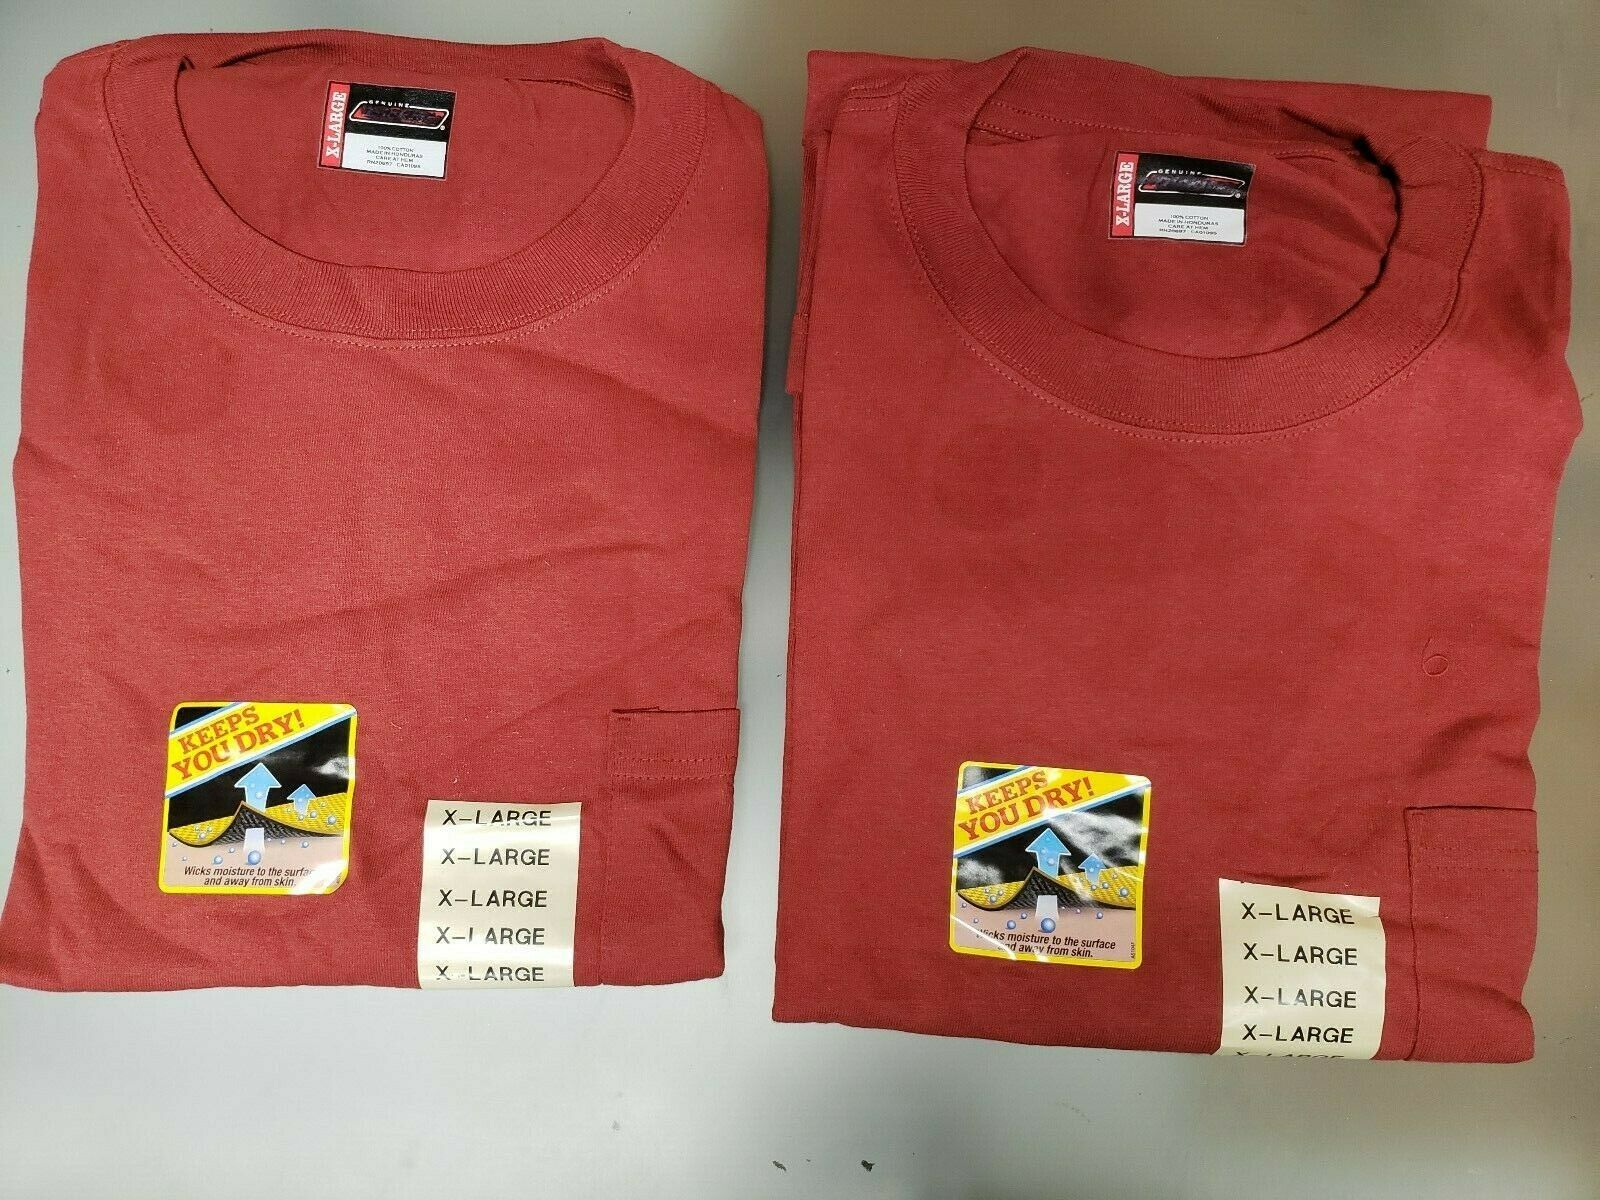 2 PACK Dickies Mens T shirt Short Sleeve Pocket Tee Heavy We